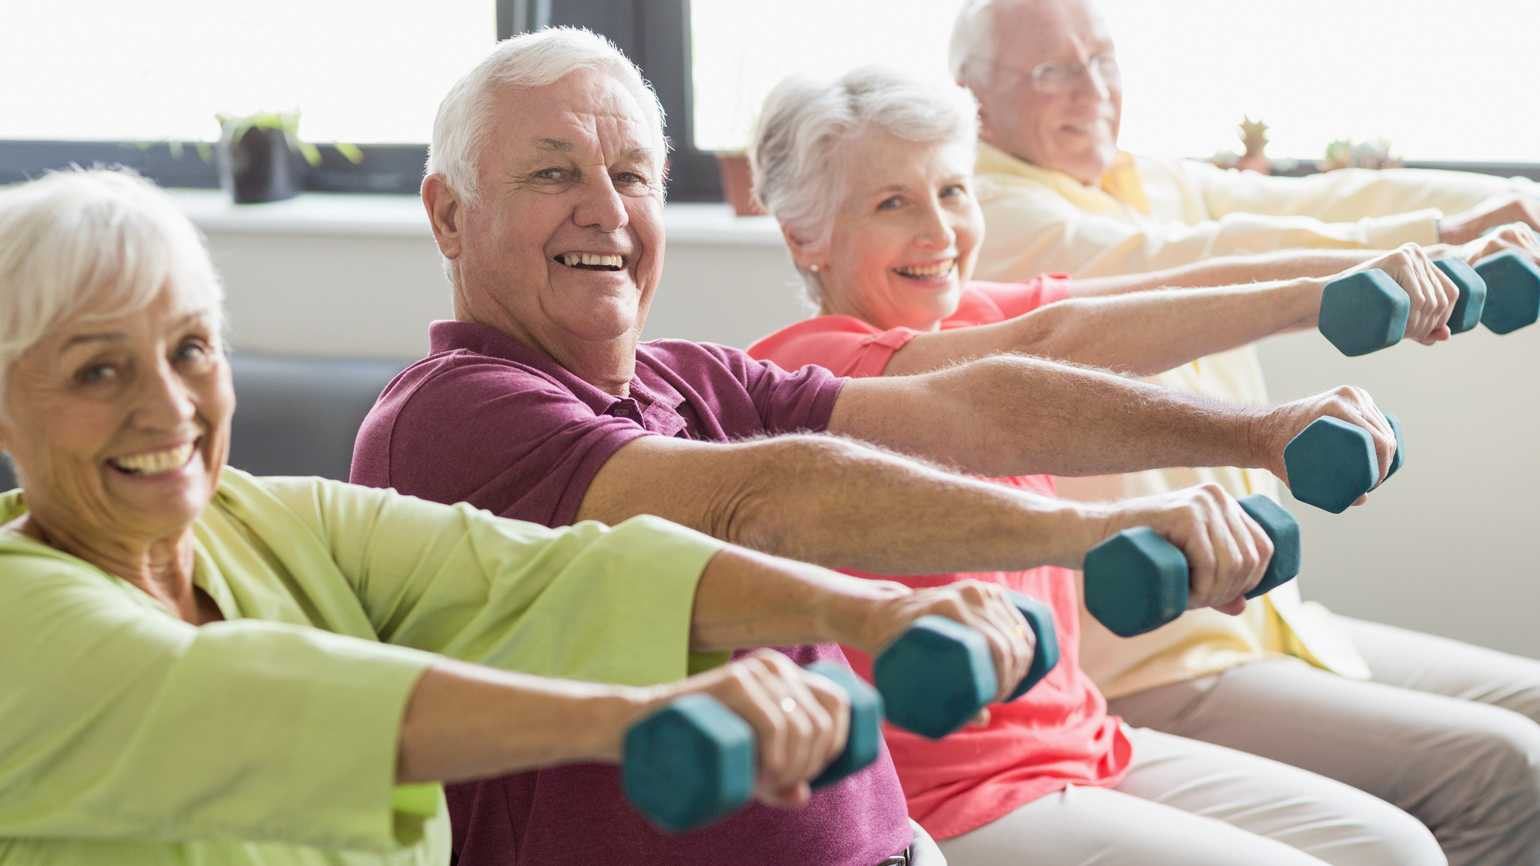 A group of enthusiastic senior citizens doing weight training.